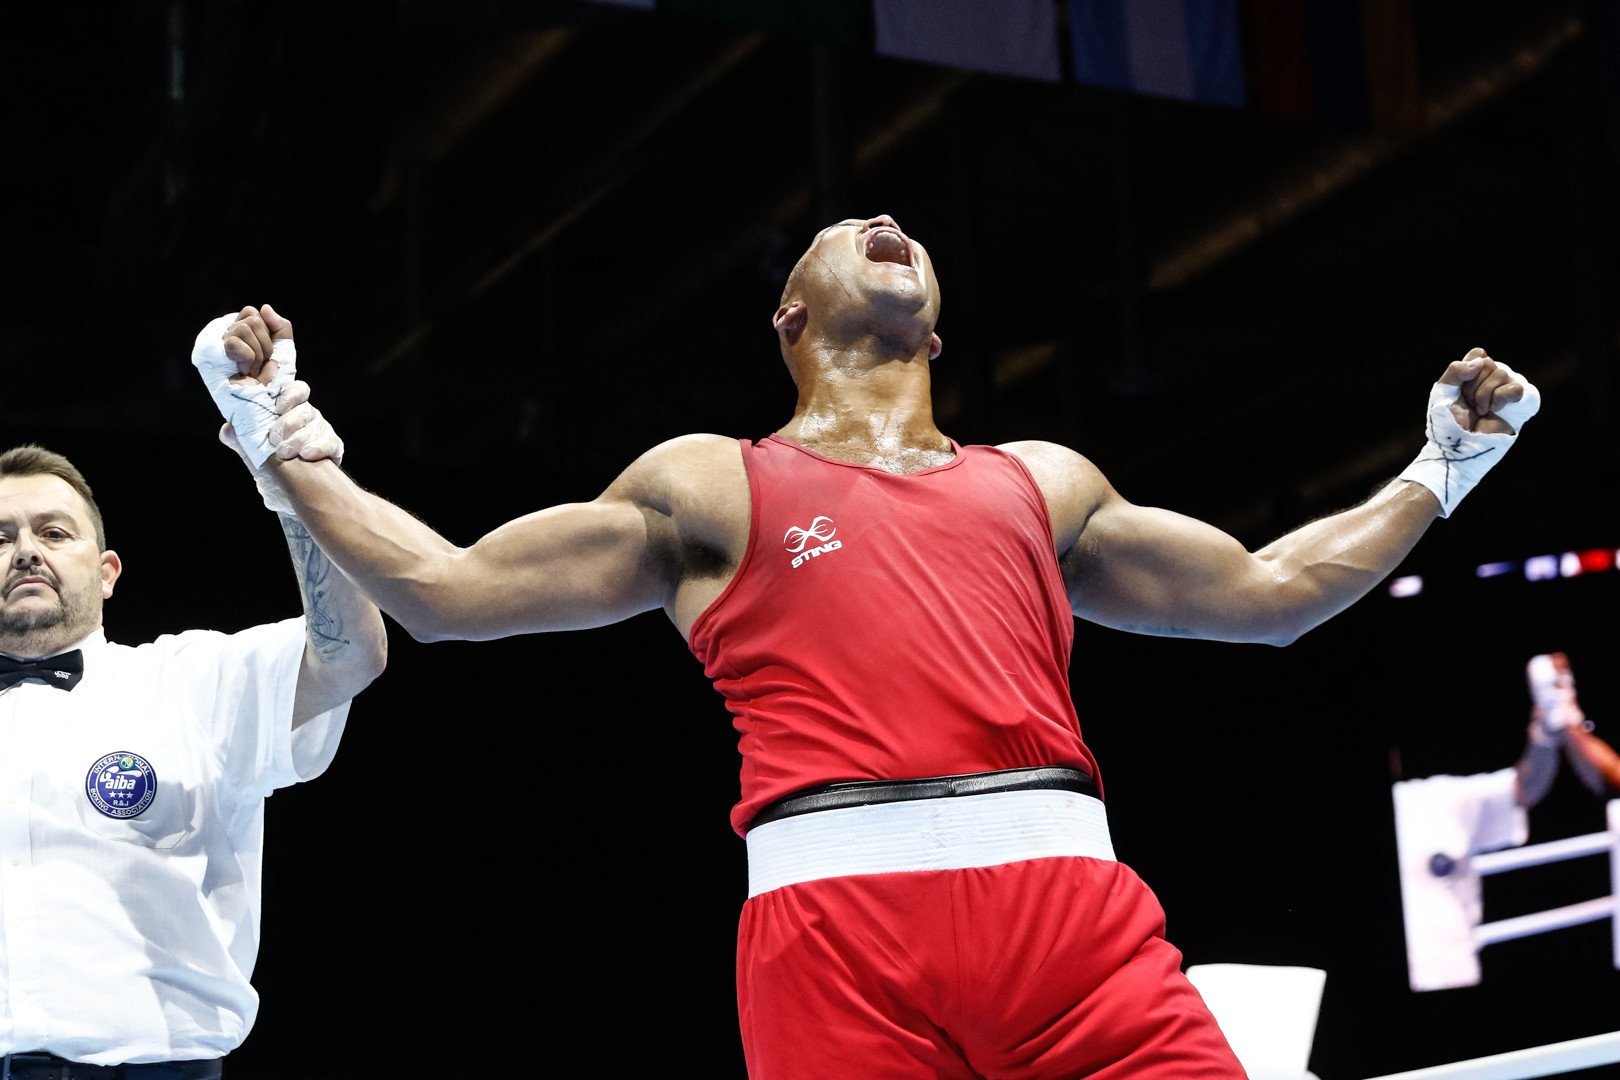 Commonwealth champion Clarke booed as he narrowly defeats home favourite Babanin at AIBA World Championships